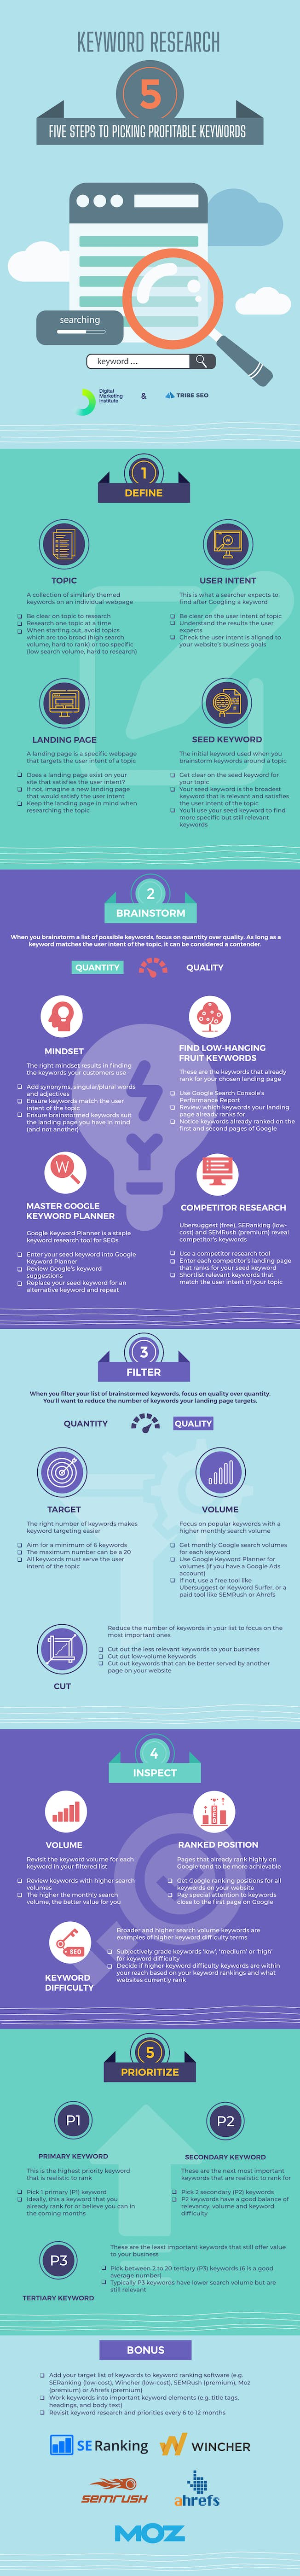 Infographic: The 5 Steps of Keyword Research